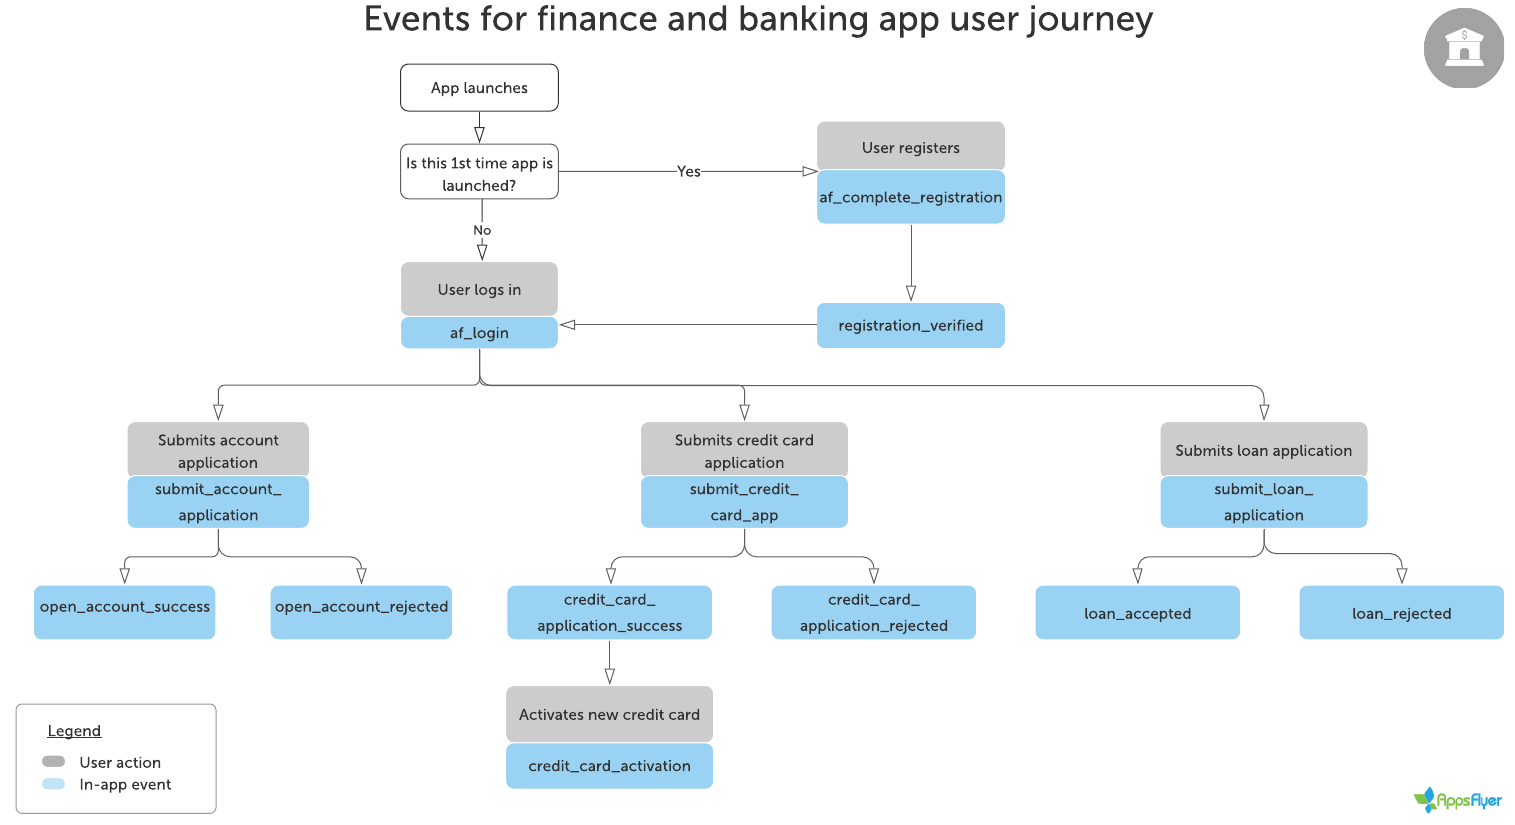 Flowchart_for_recommended_events finance_banking_app_user_journey